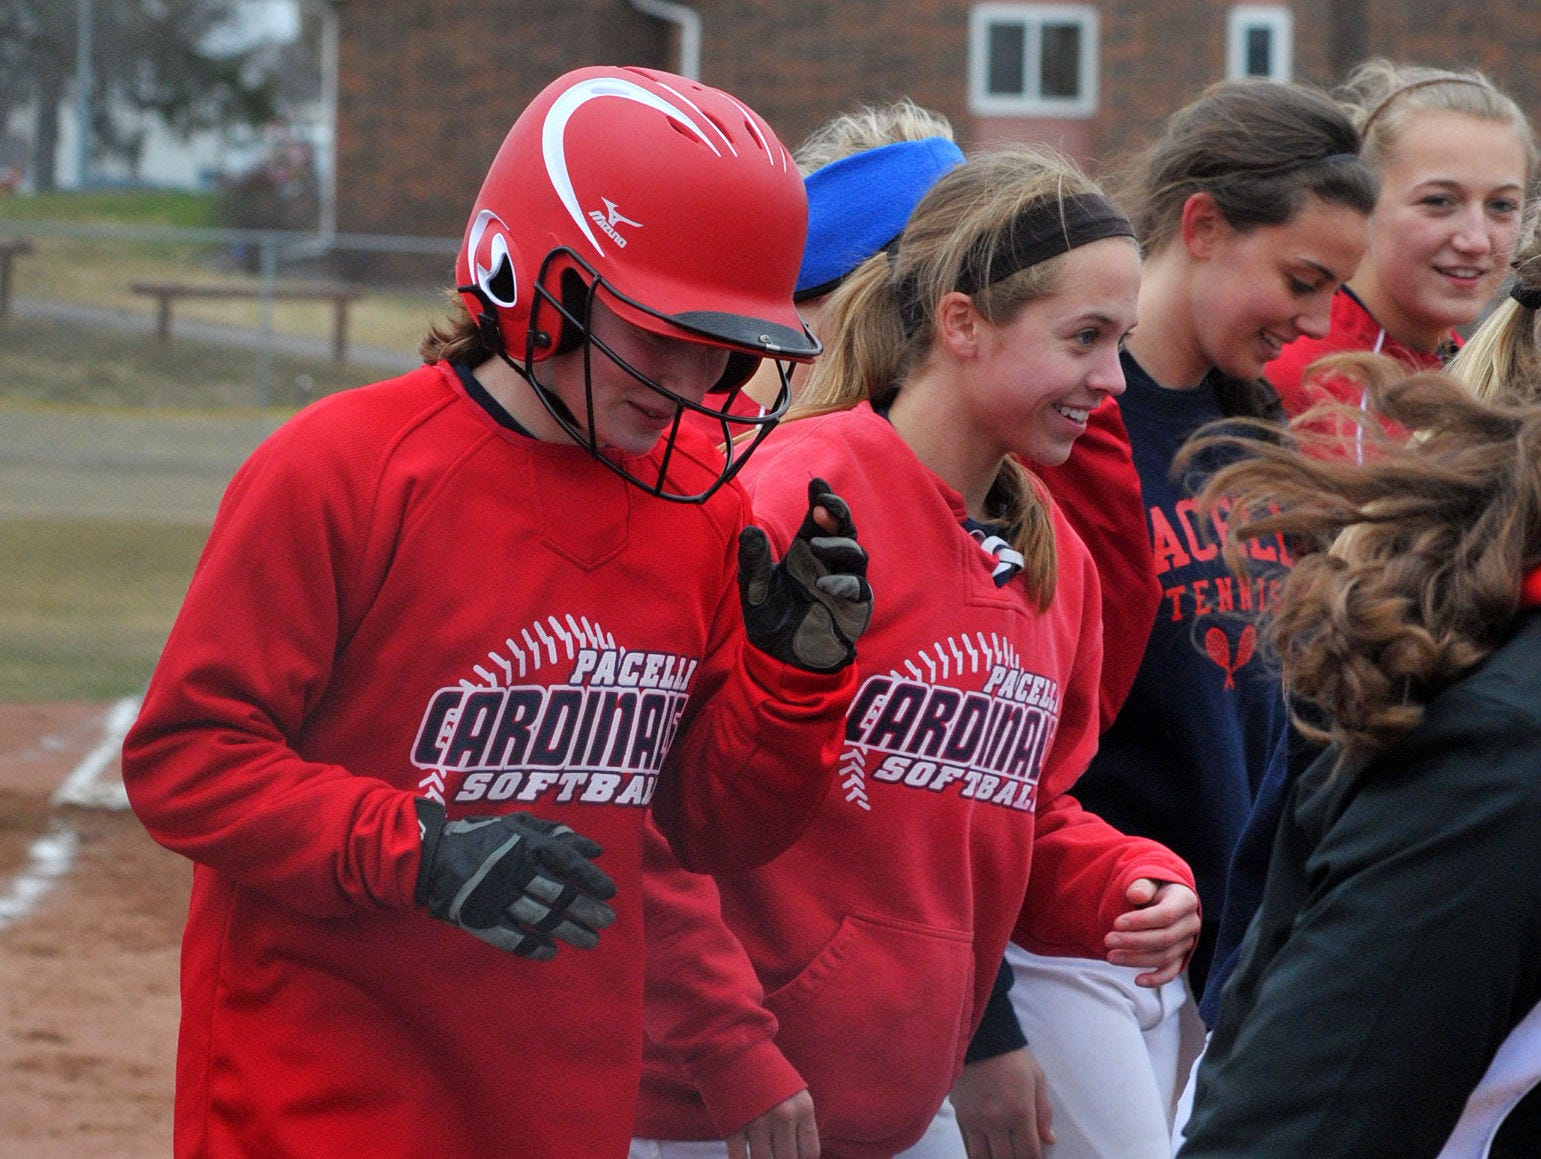 Pacelli's Sara Mitch, left, is greeted by teammates after hitting a two-run home run in the second inning.